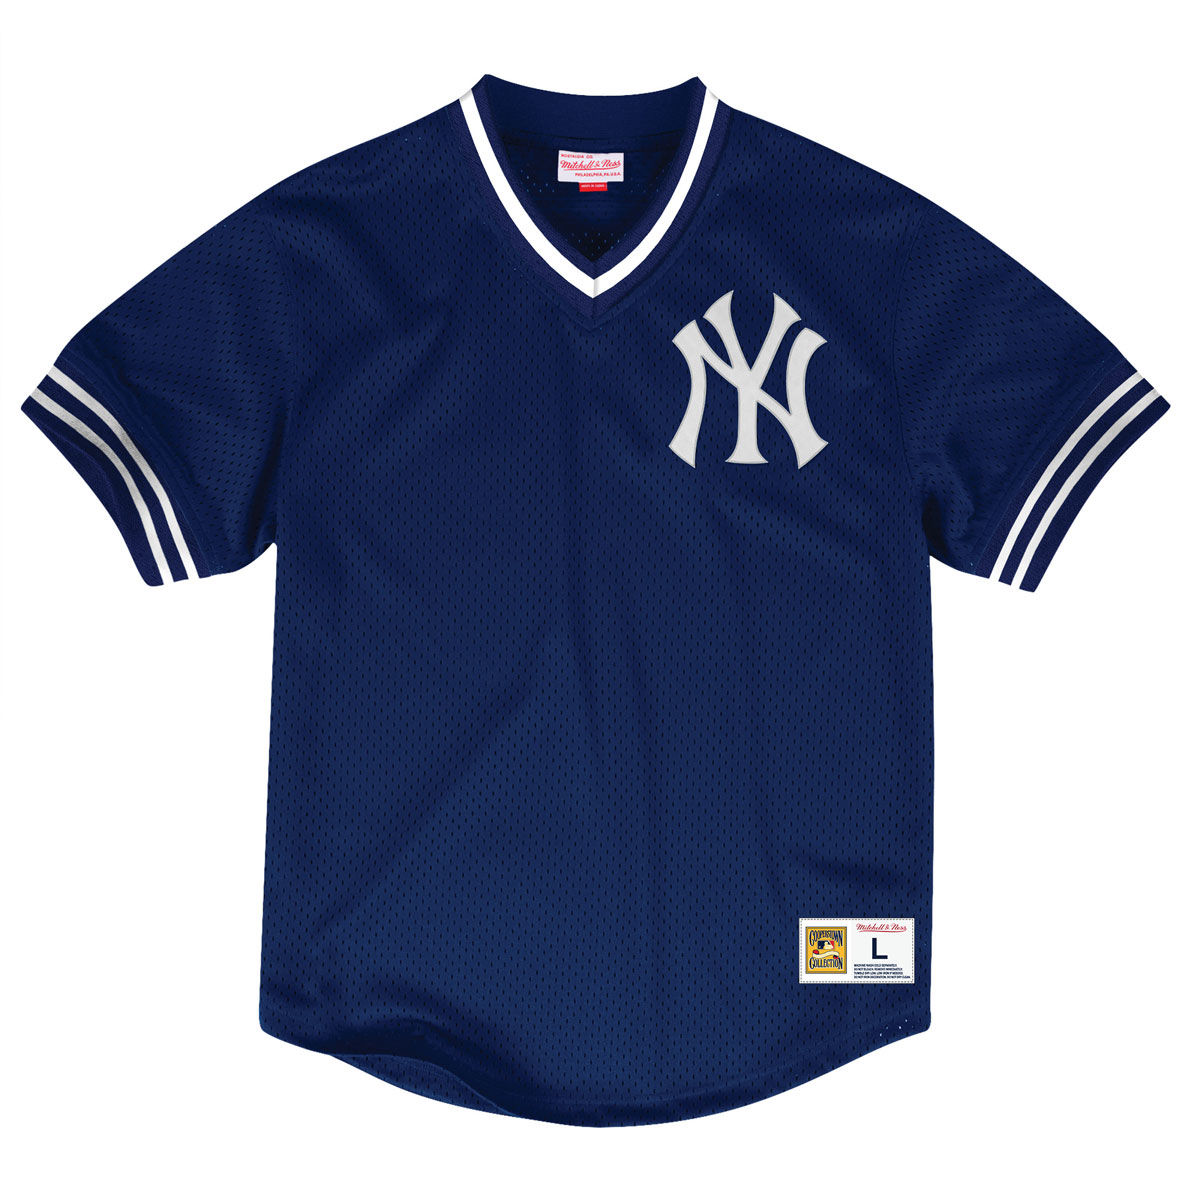 New York Yankees Adult V Neck Mesh Jersey